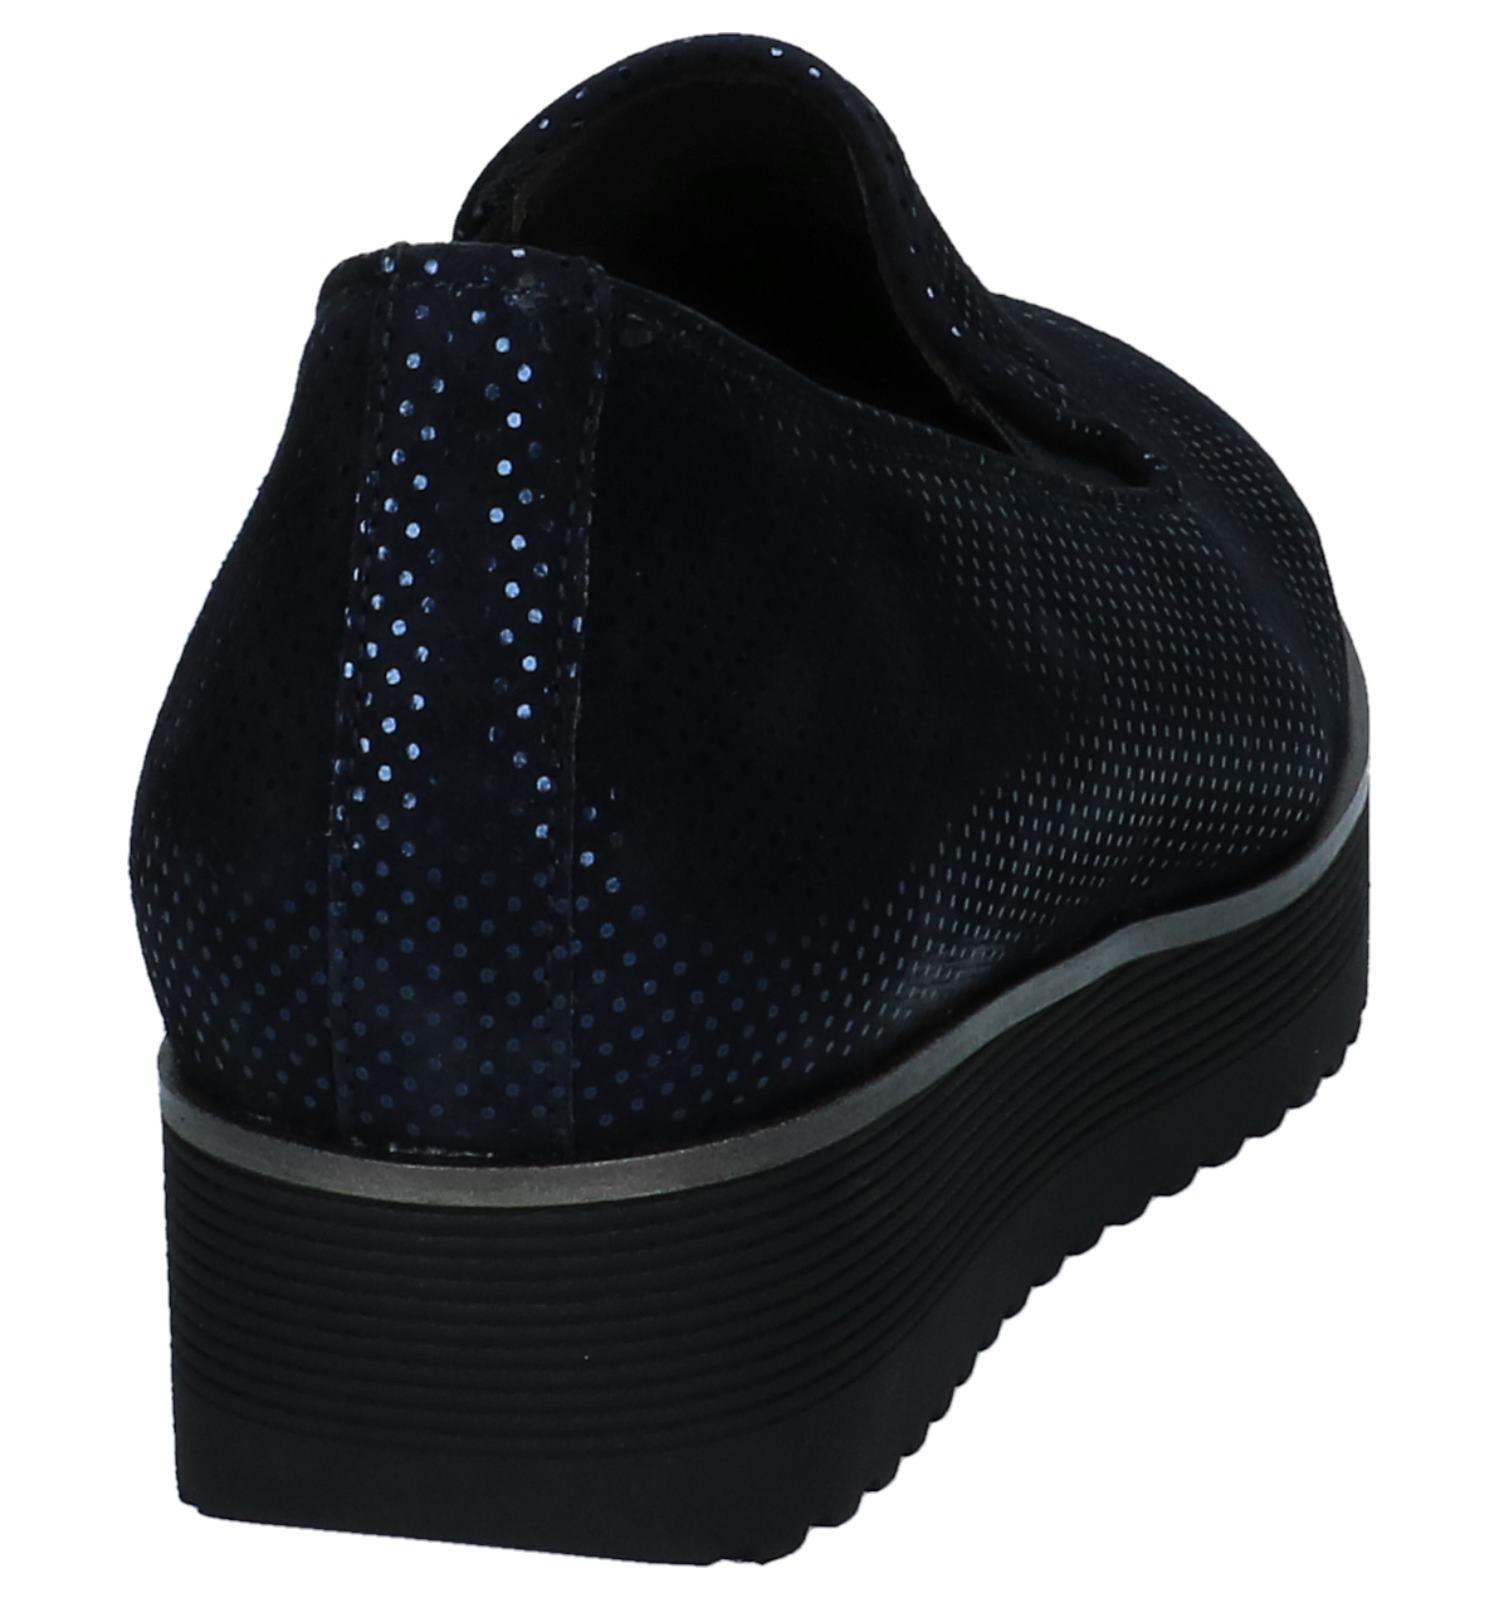 Instappers Instappers Optifit Donkerblauw Gabor Comfortabele Comfortabele 4jAL5R